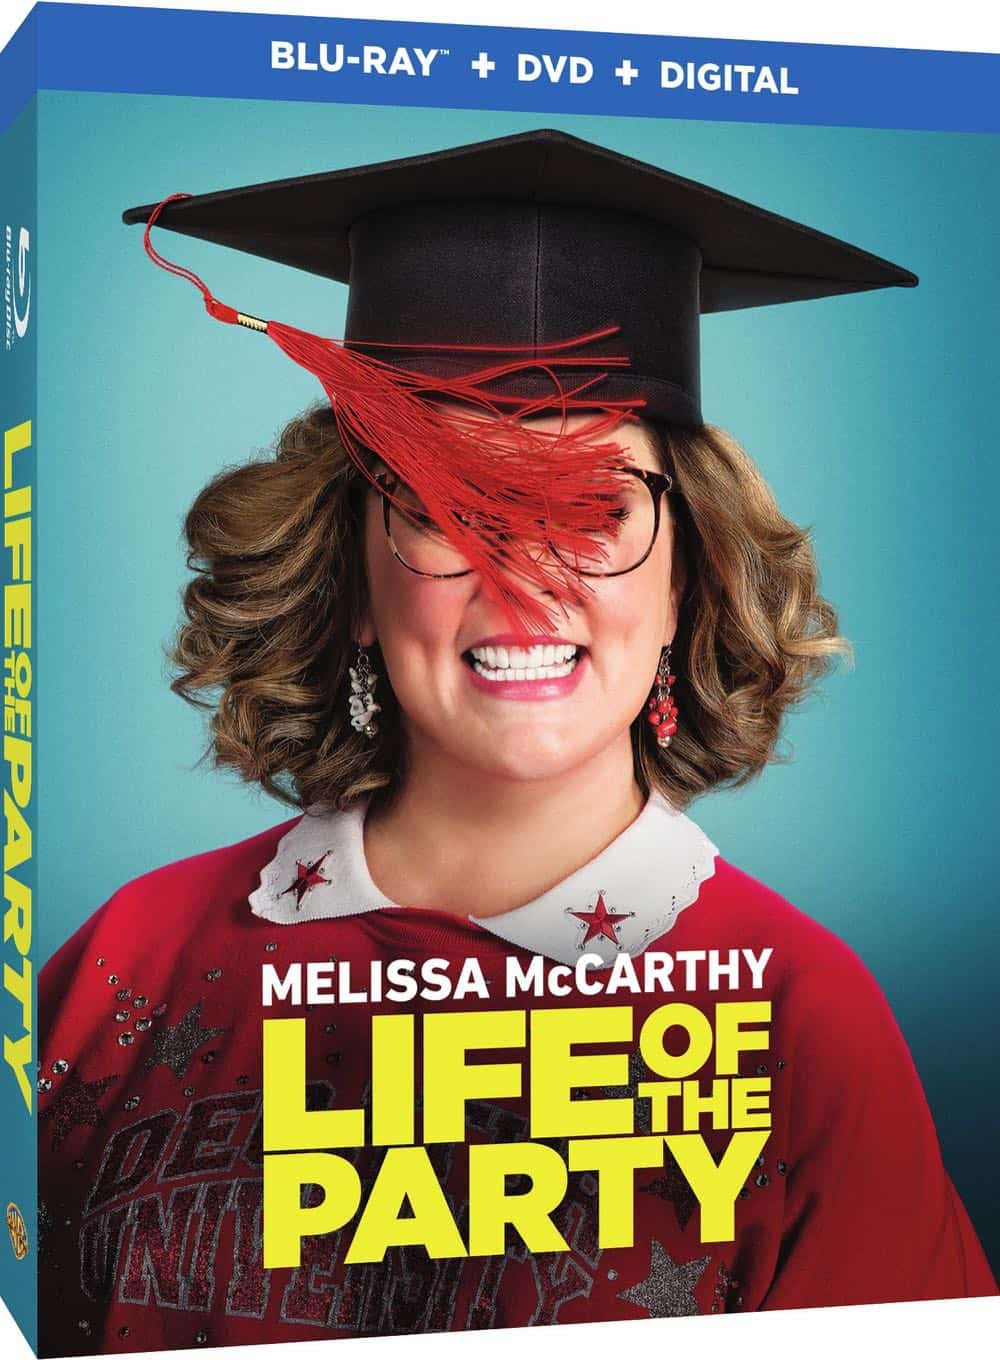 Life Of The Party Bluray DVD Digital 1